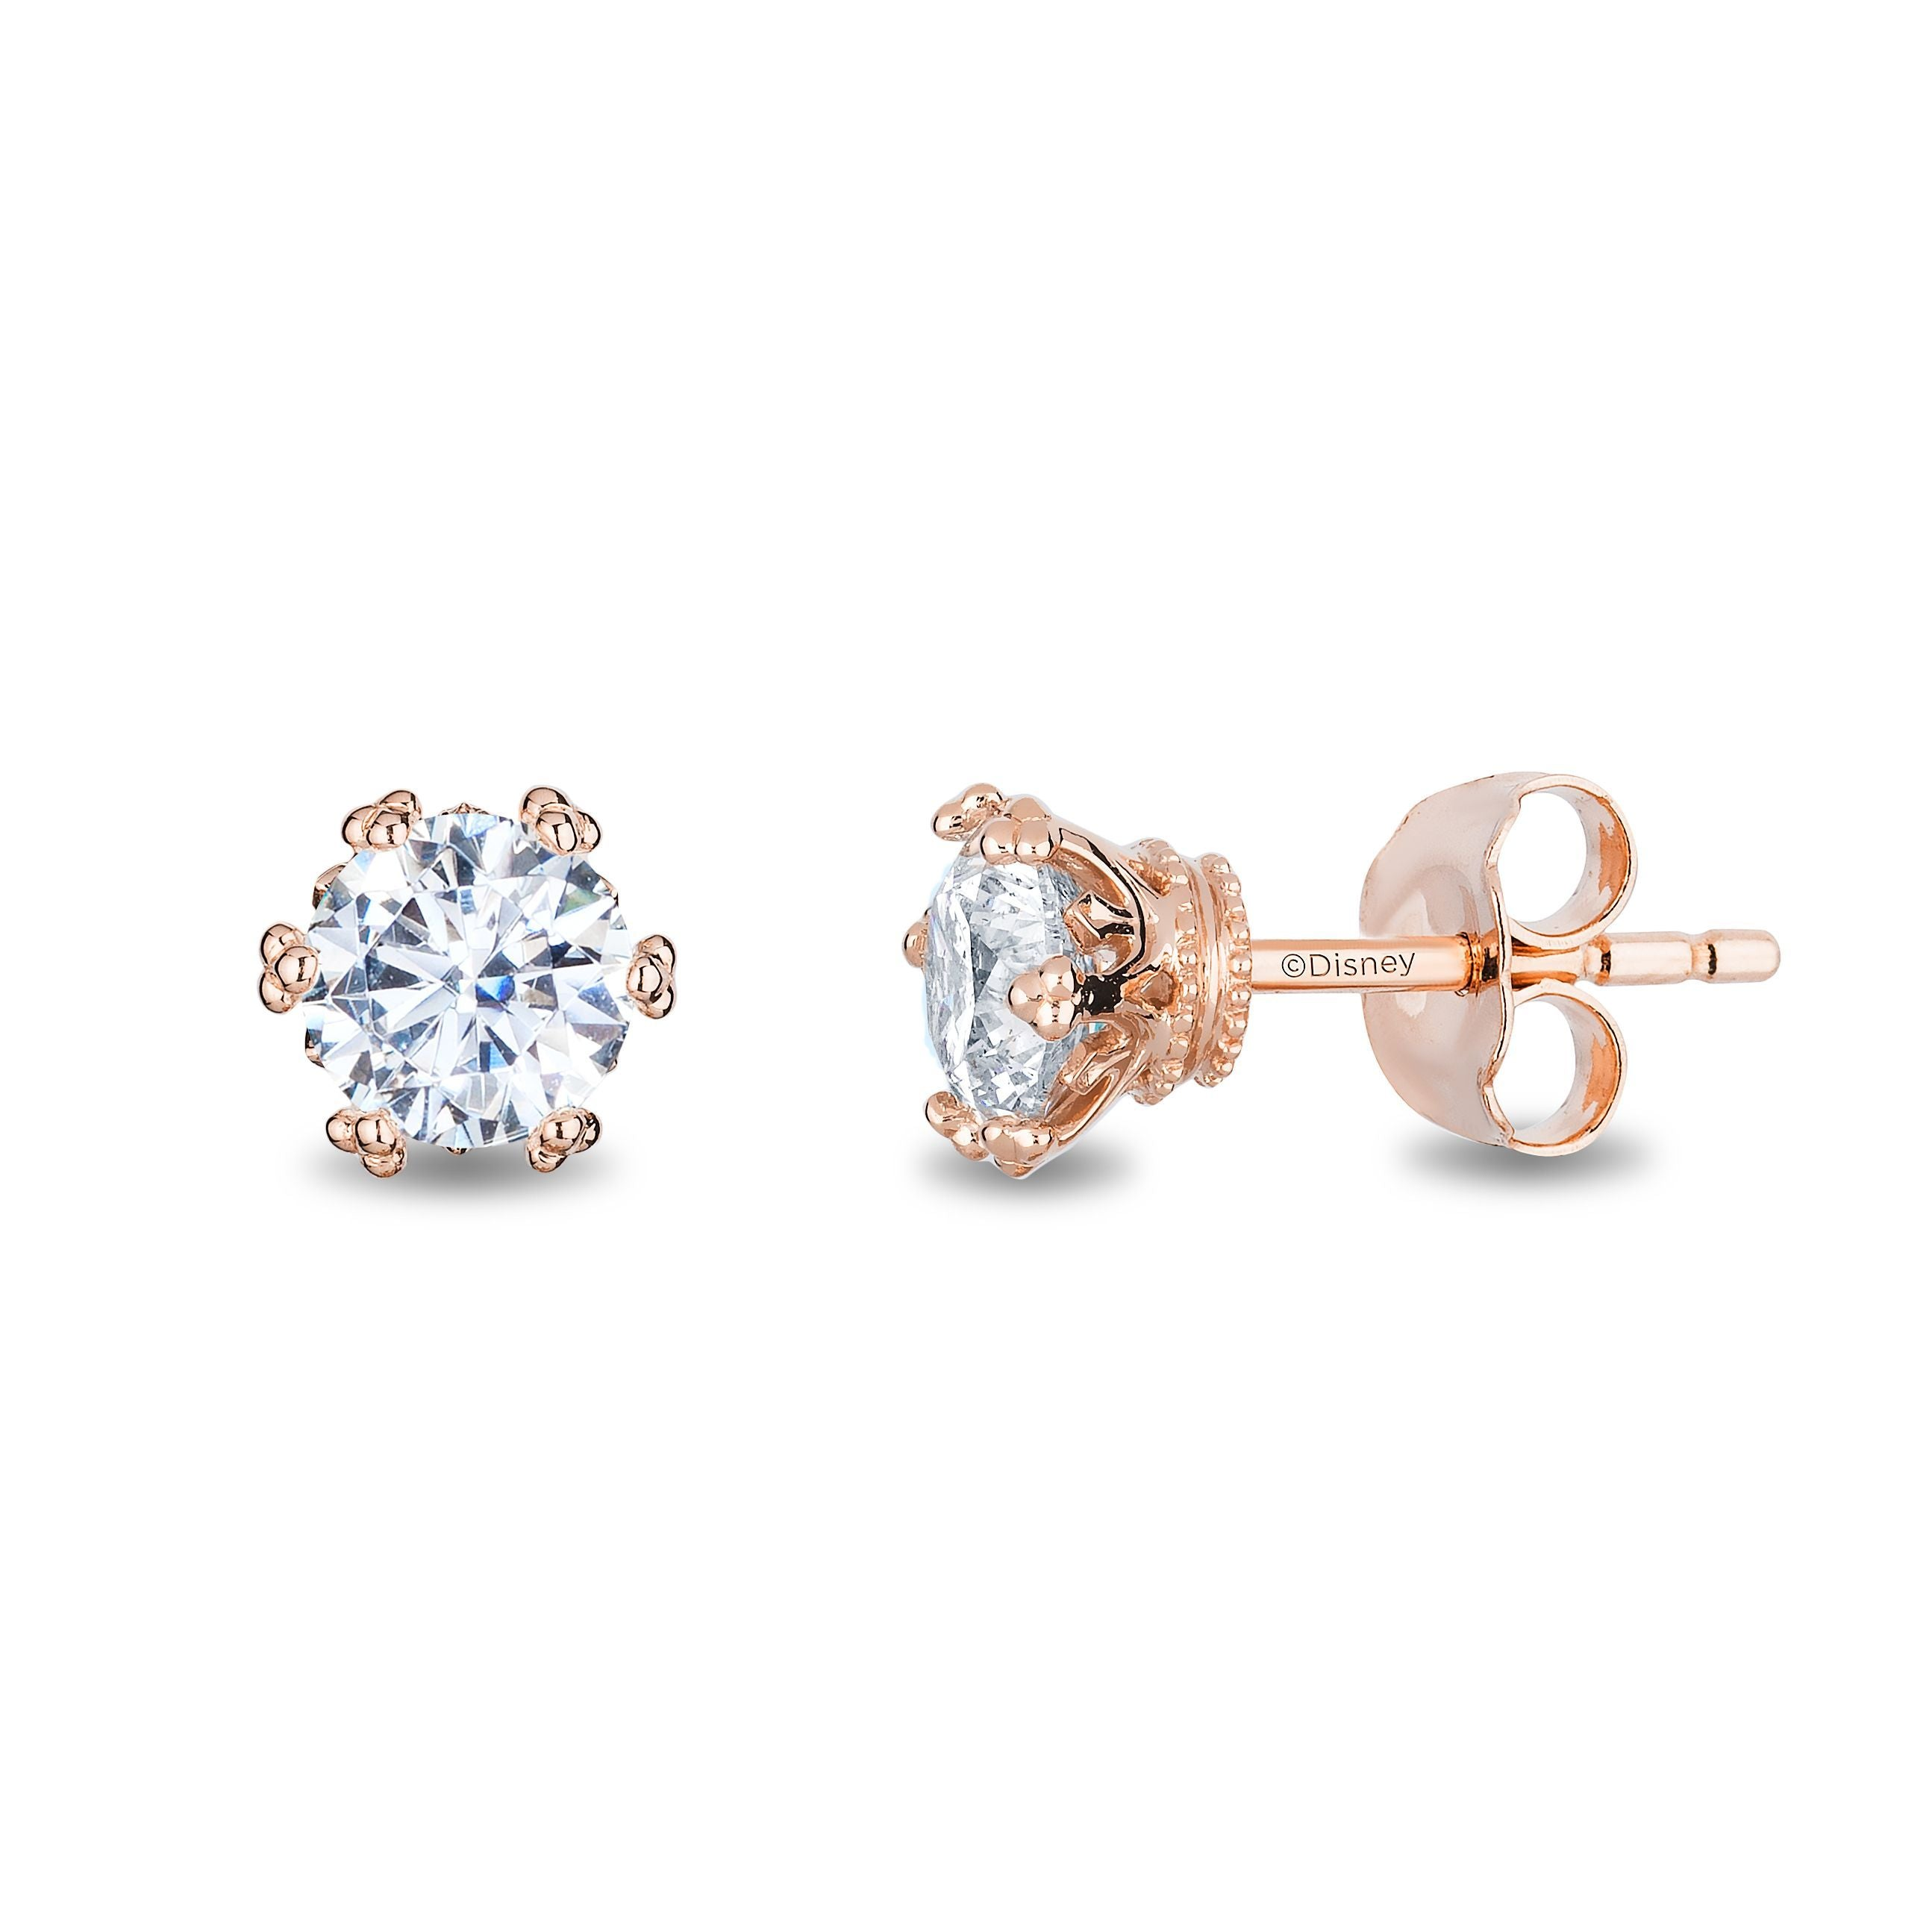 enchanted_disney-majestic-princess_0_75_cttw_diamond_solitaire_earrings-14k_pink_gold_0.75CTTW_1